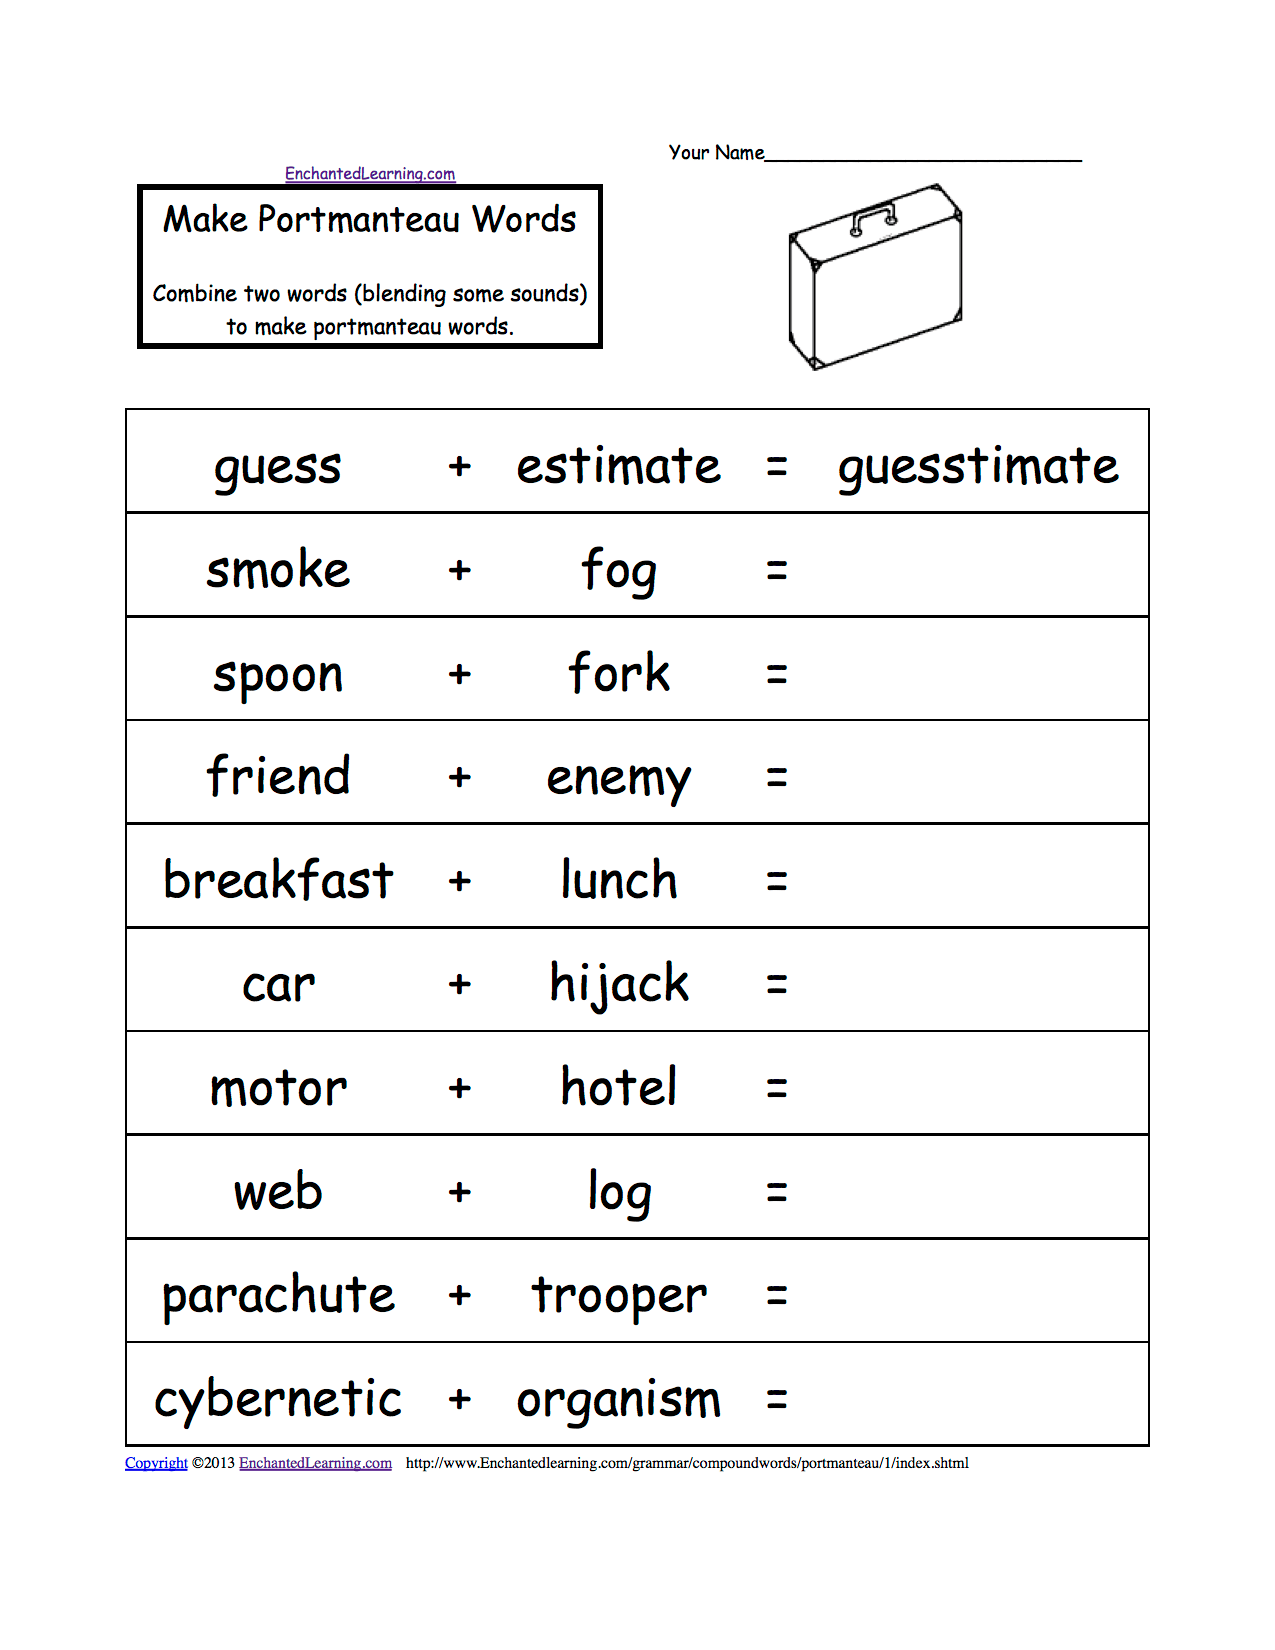 Portmanteau Words Printable Worksheets Enchantedlearning